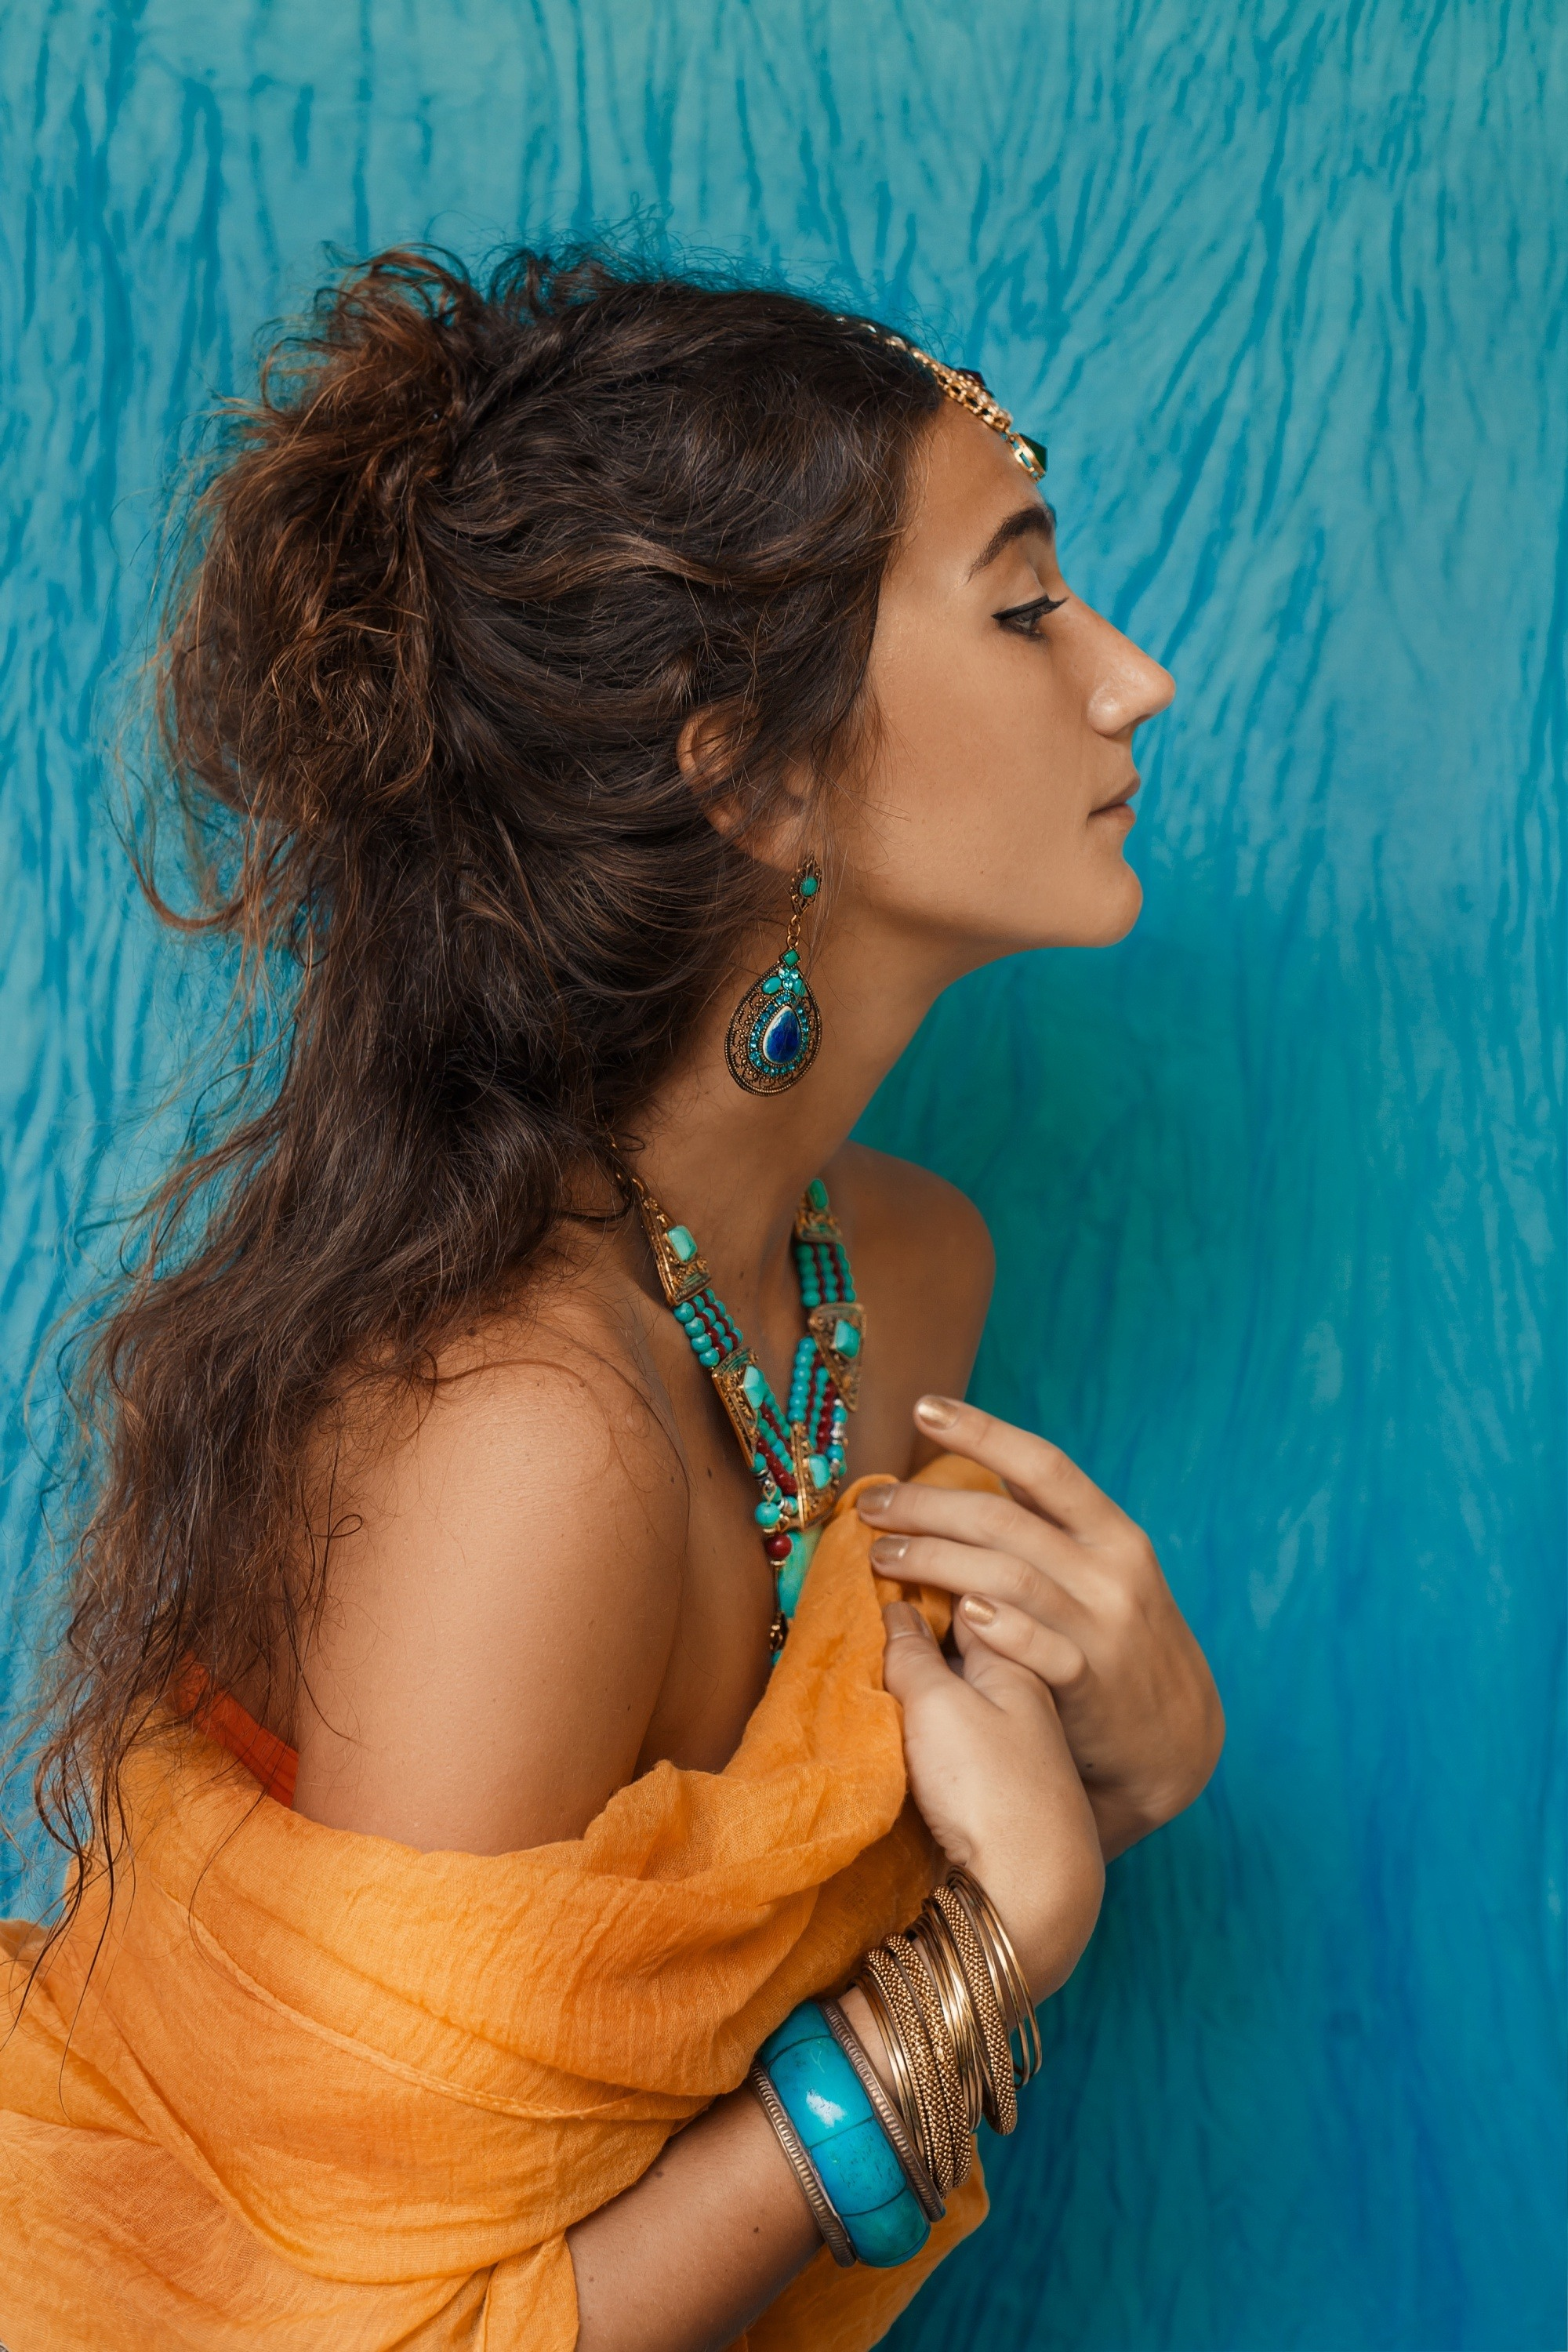 Boho hairstyles: Side view of a woman with long dark curly hair wearing an off-shoulder dress